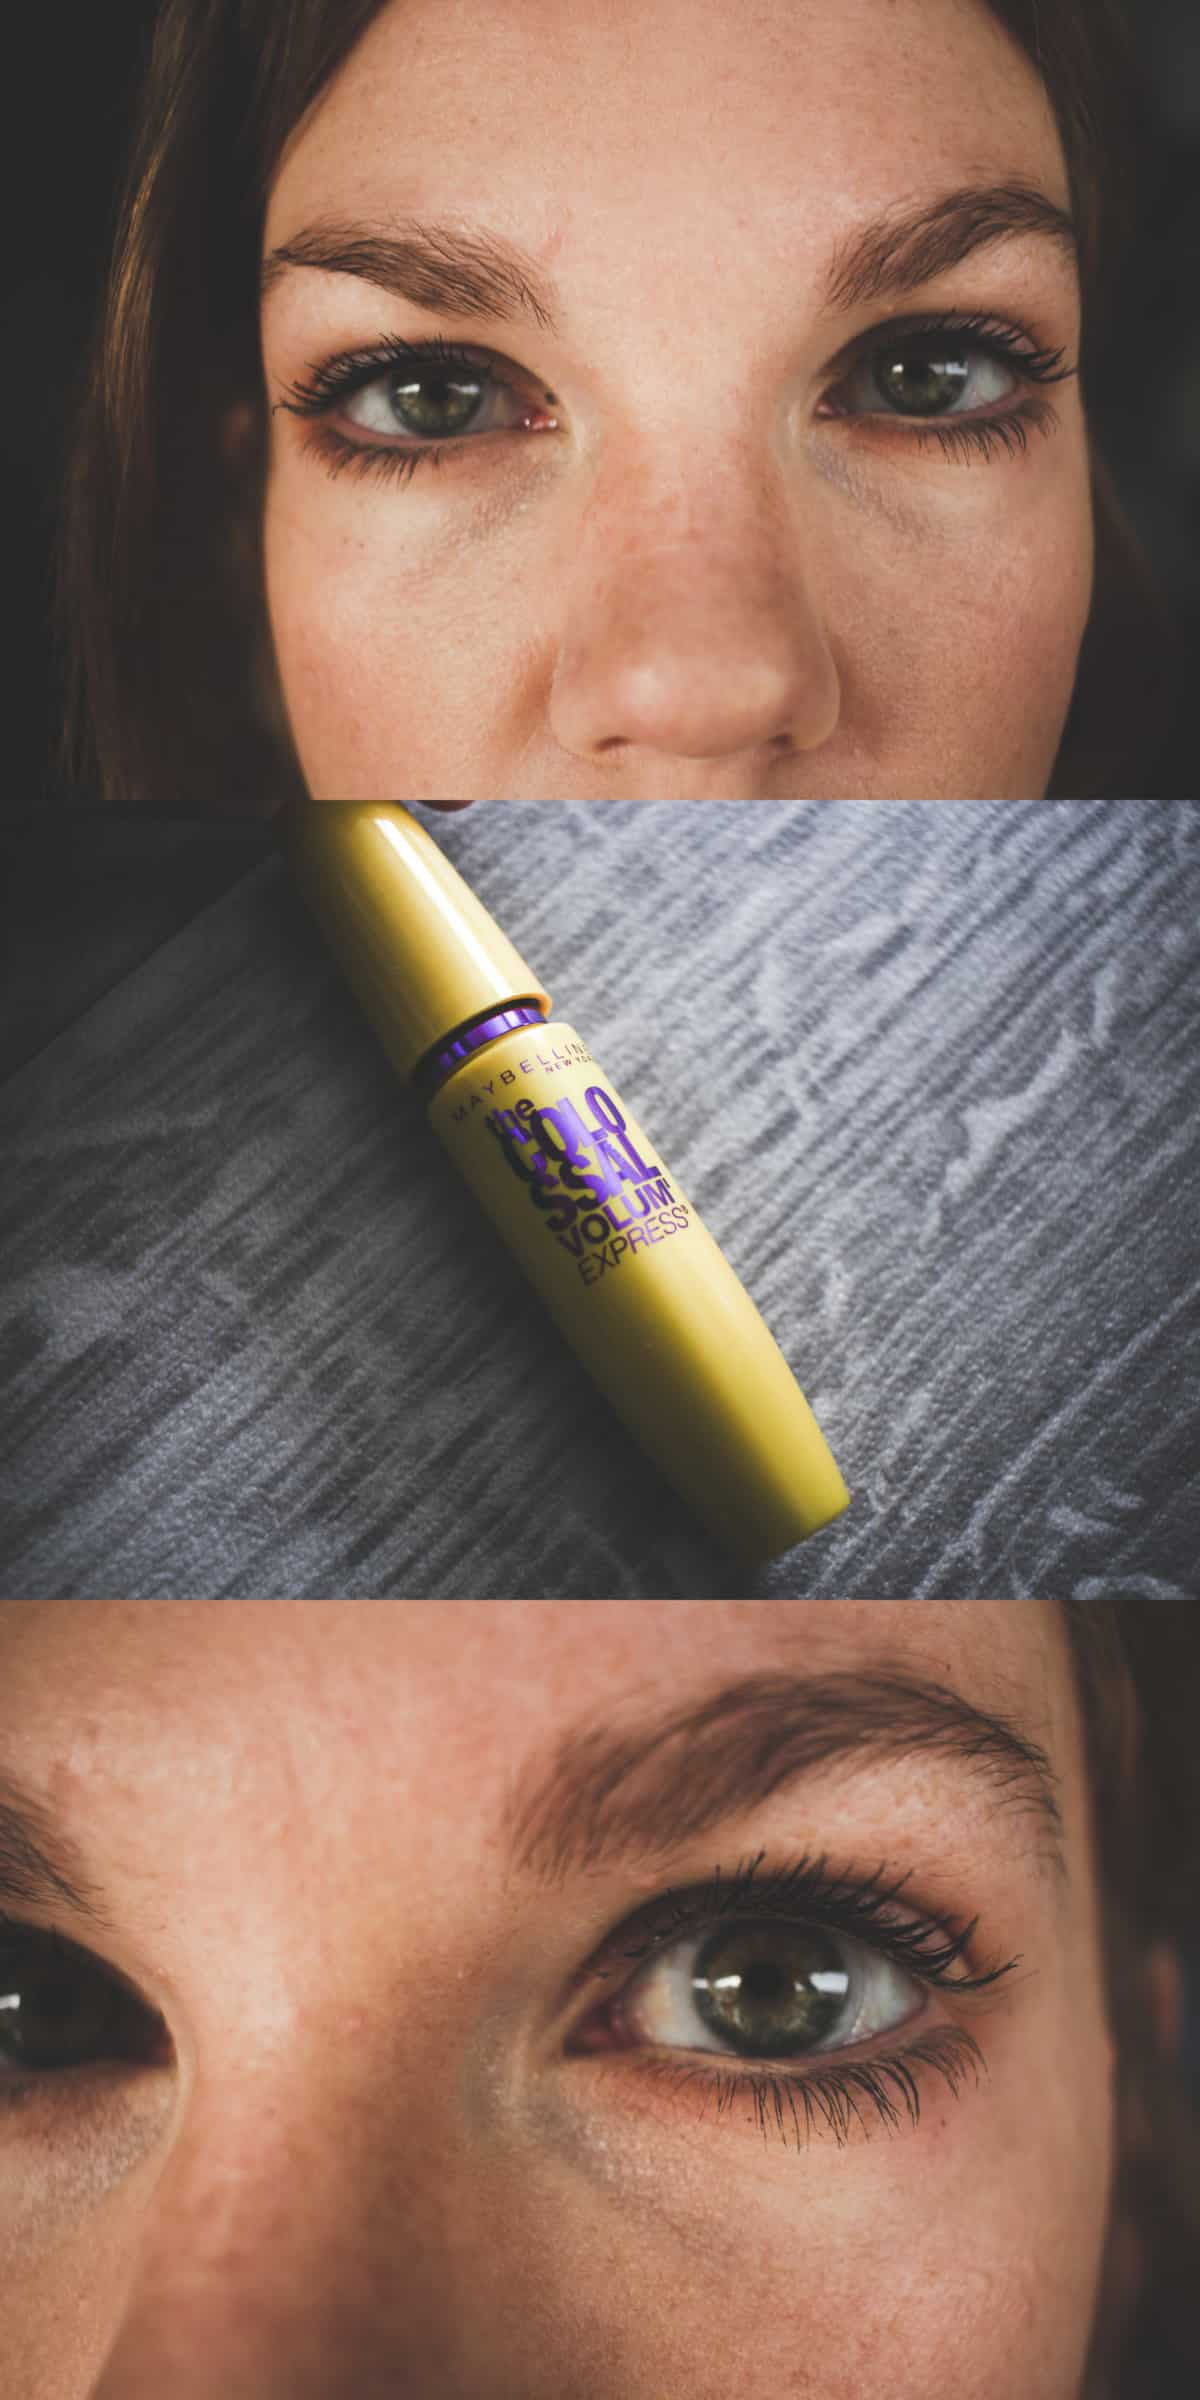 I went through and compared everyone's favorite drugstore mascaras. Let's find your dream mascara together!